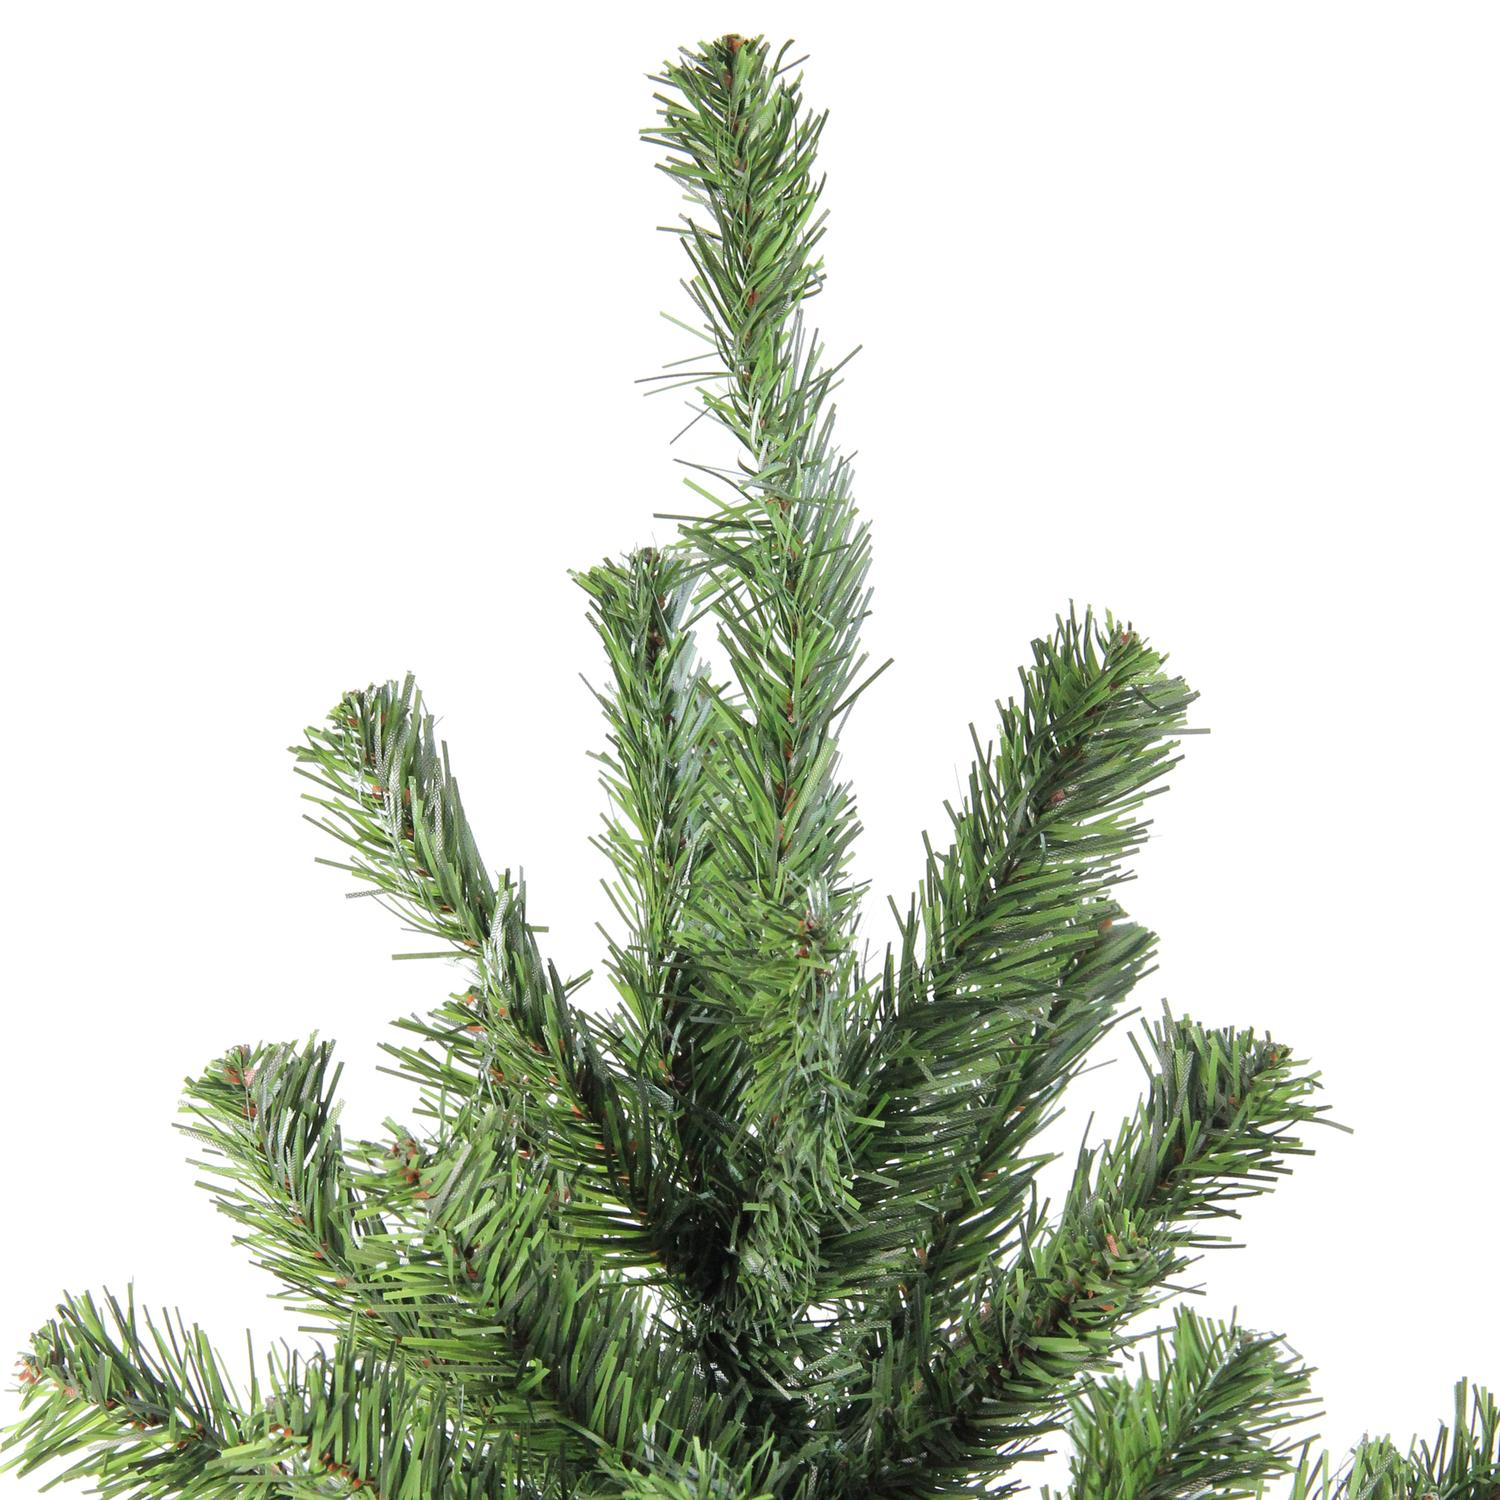 5' Canadian Pine Artificial Christmas Tree - Unlit - image 1 de 2